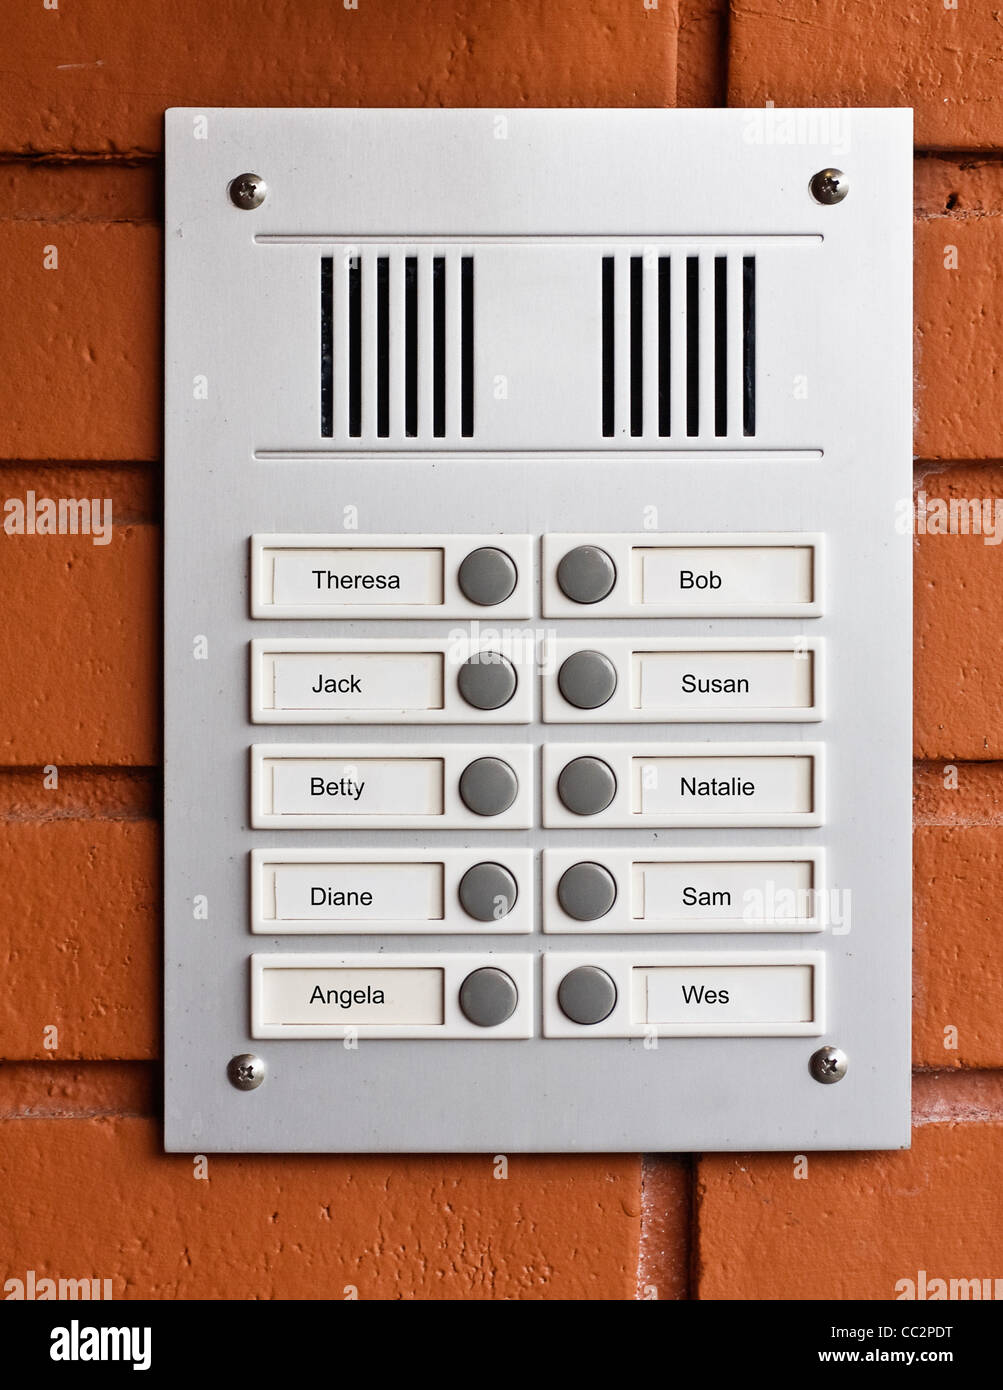 call box or buzzer at apartment building - Stock Image